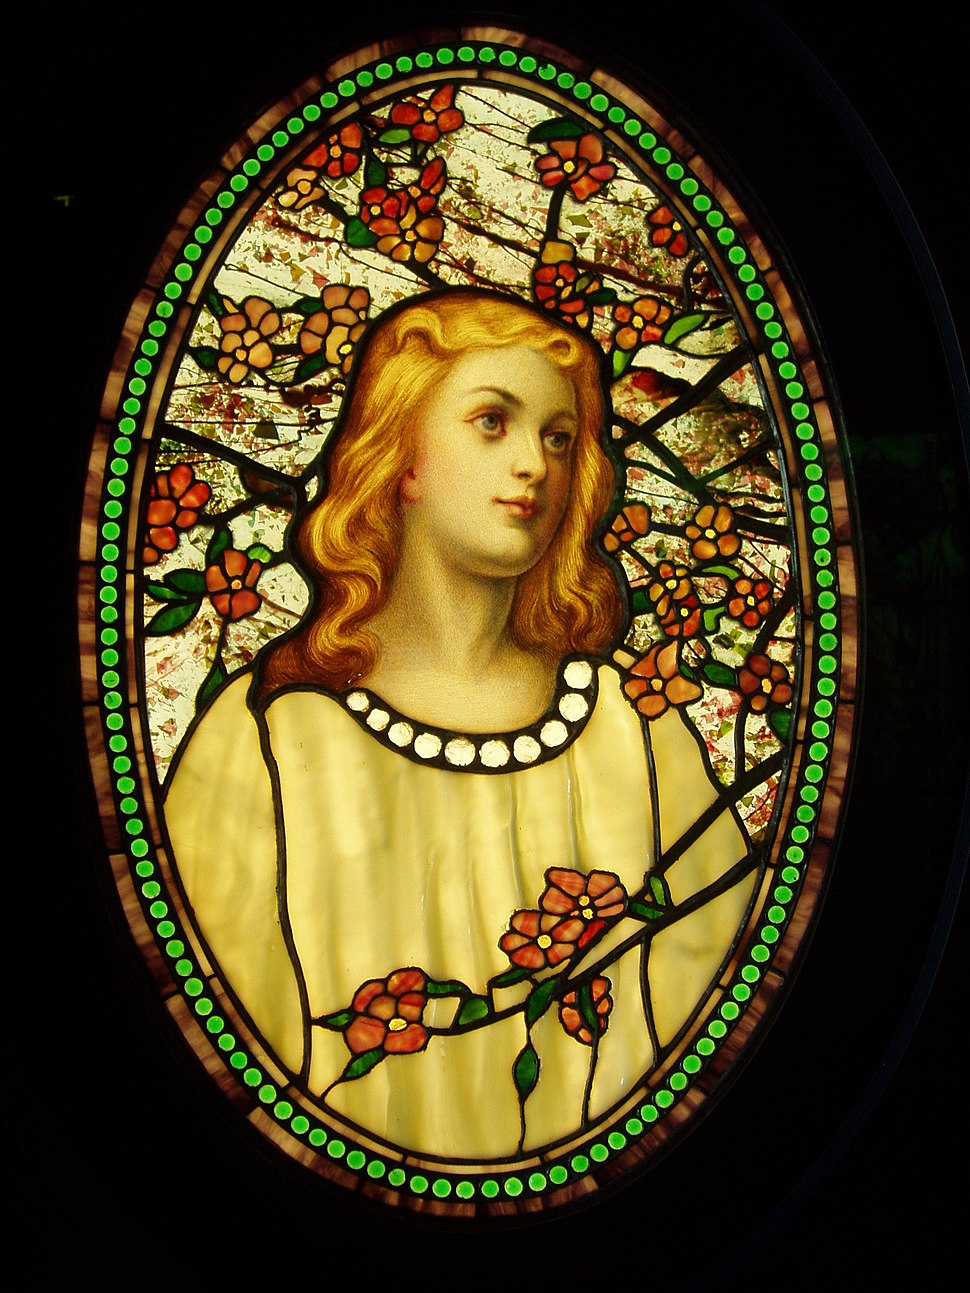 Girl with Cherry Blossoms - Tiffany Glass & Decorating Company, c. 1890